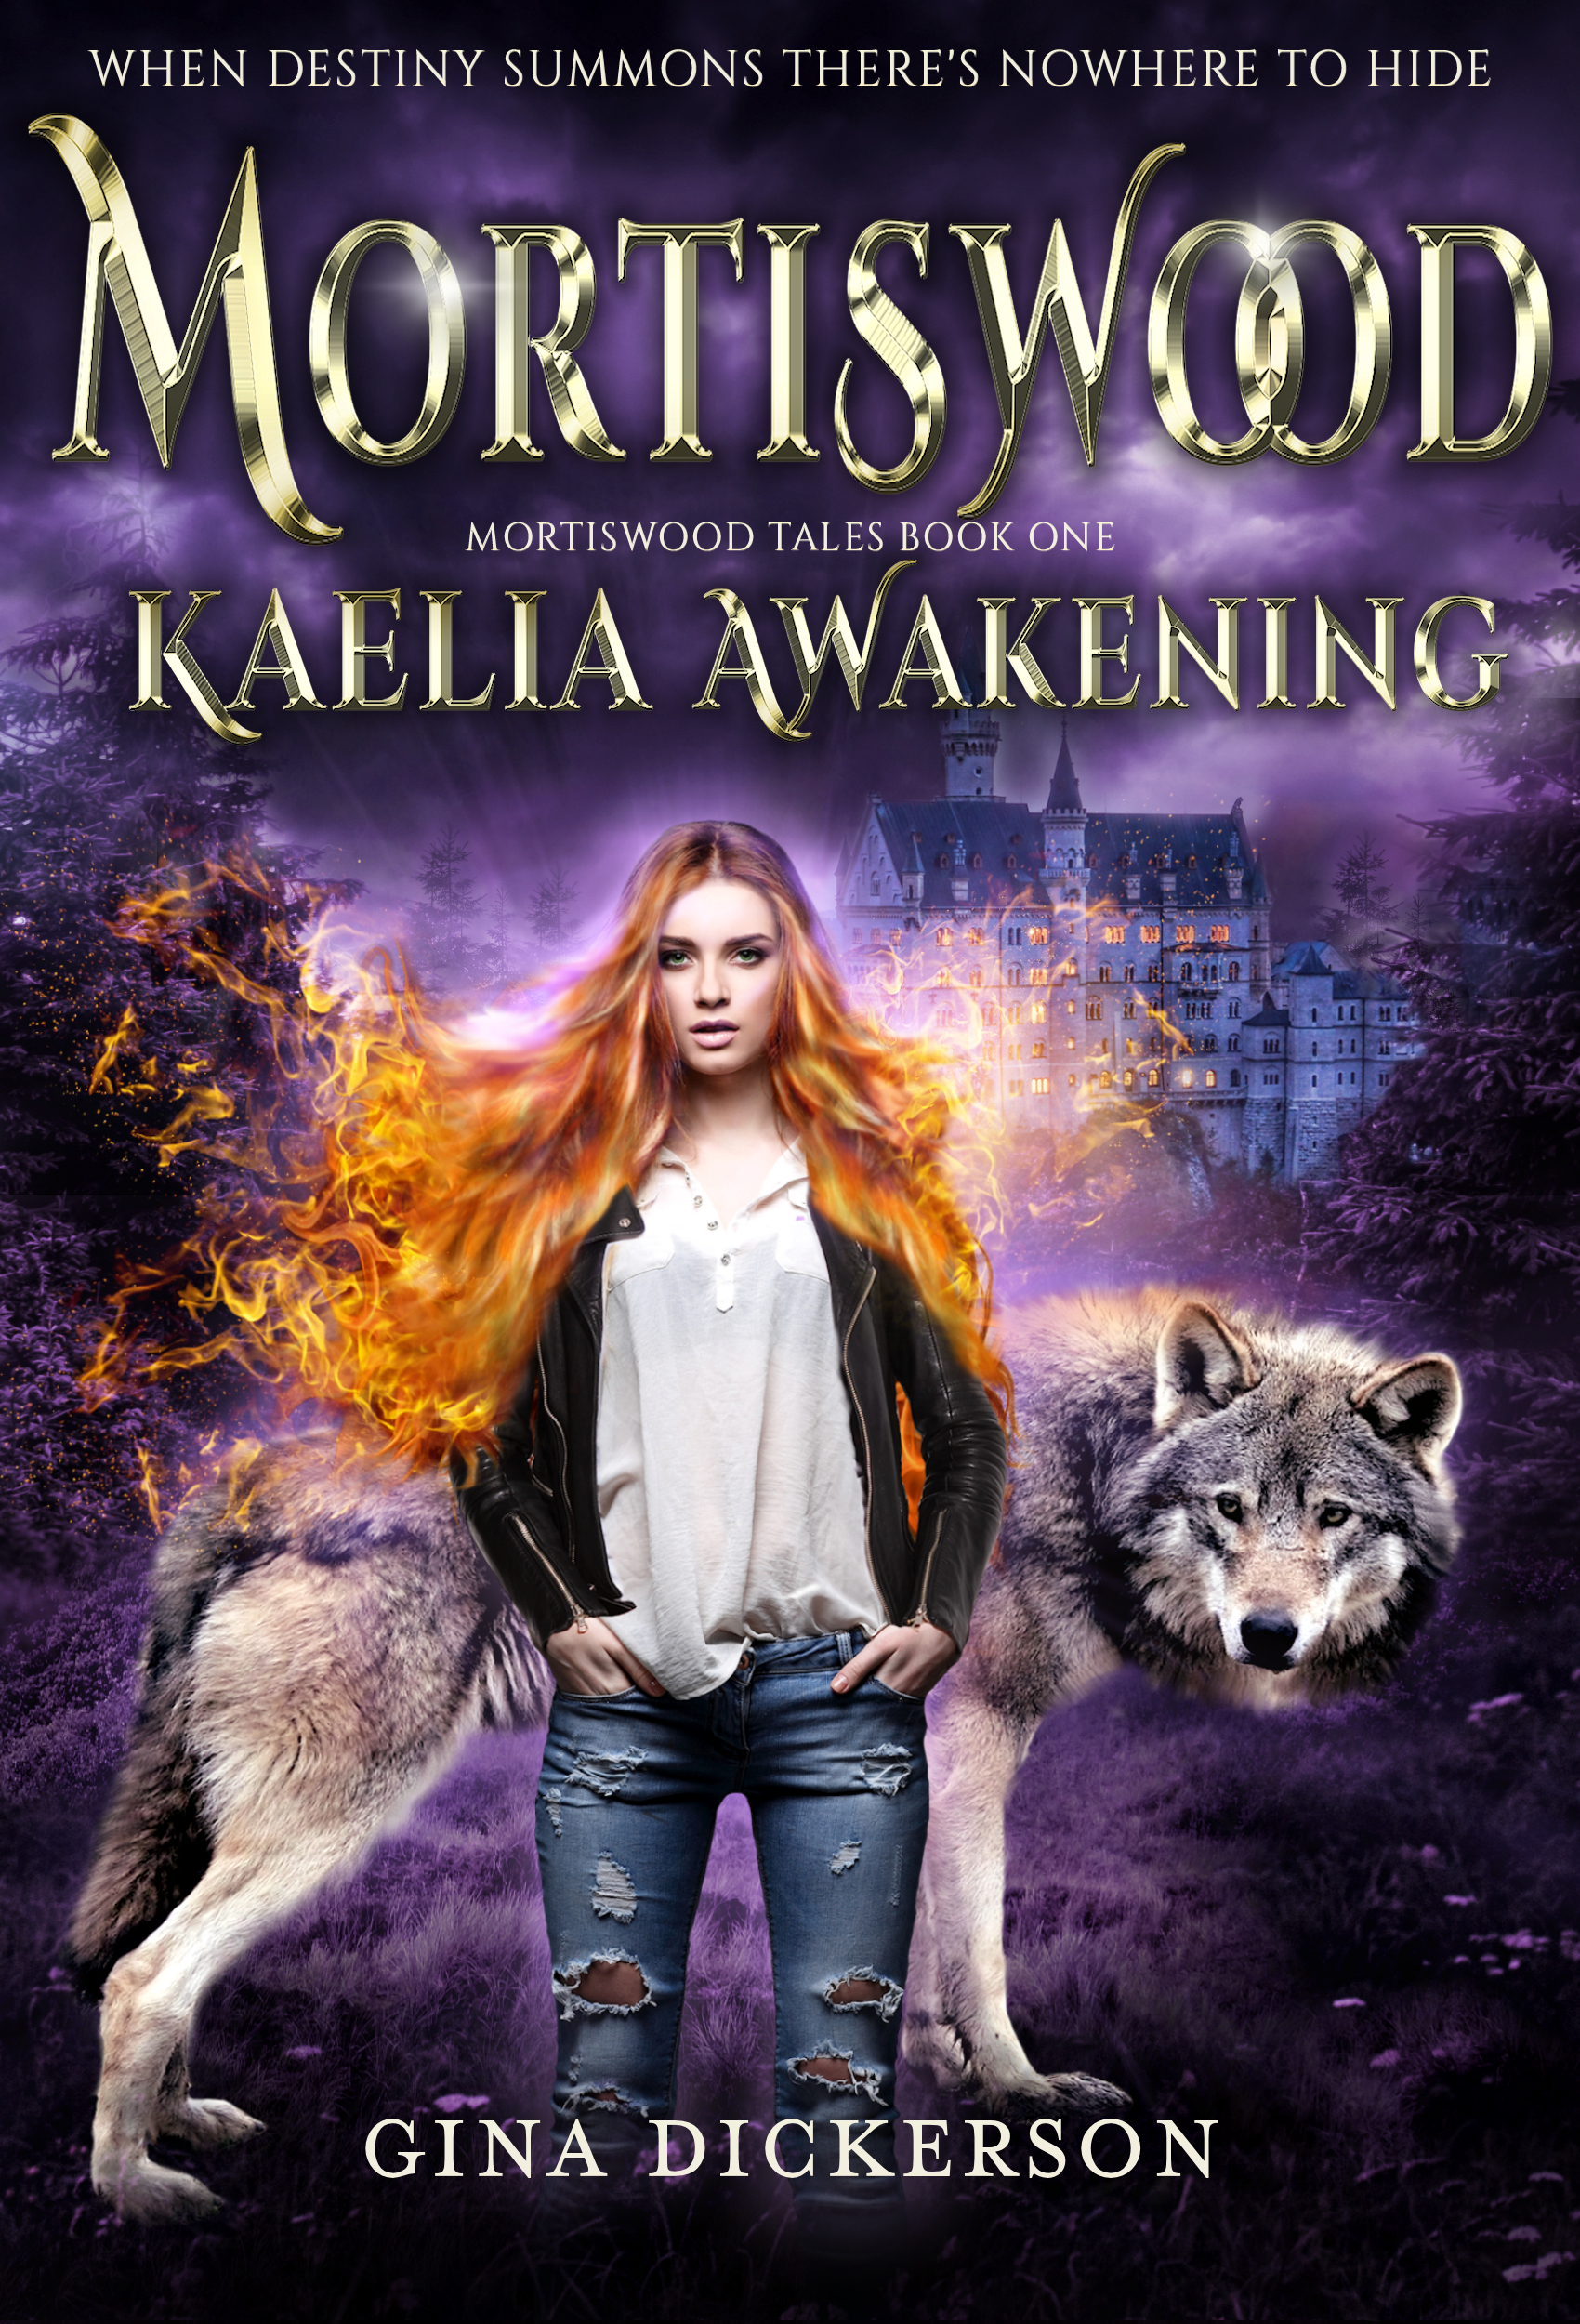 Mortiswood Kaelia Awakening